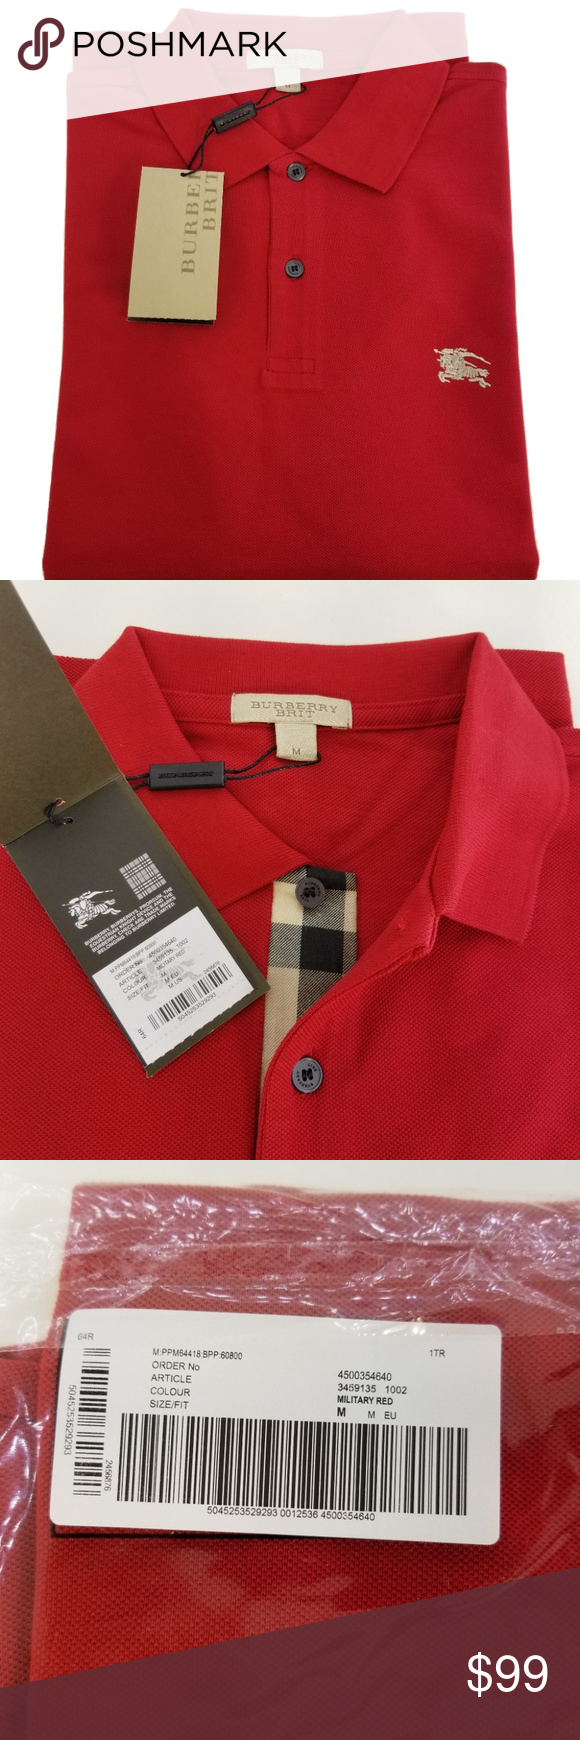 be2a9b1720f4 Burberry Brit Men s Military Red Shirt Medium Burberry Brit Men s Check  Placket Polo Shirt Medium Military